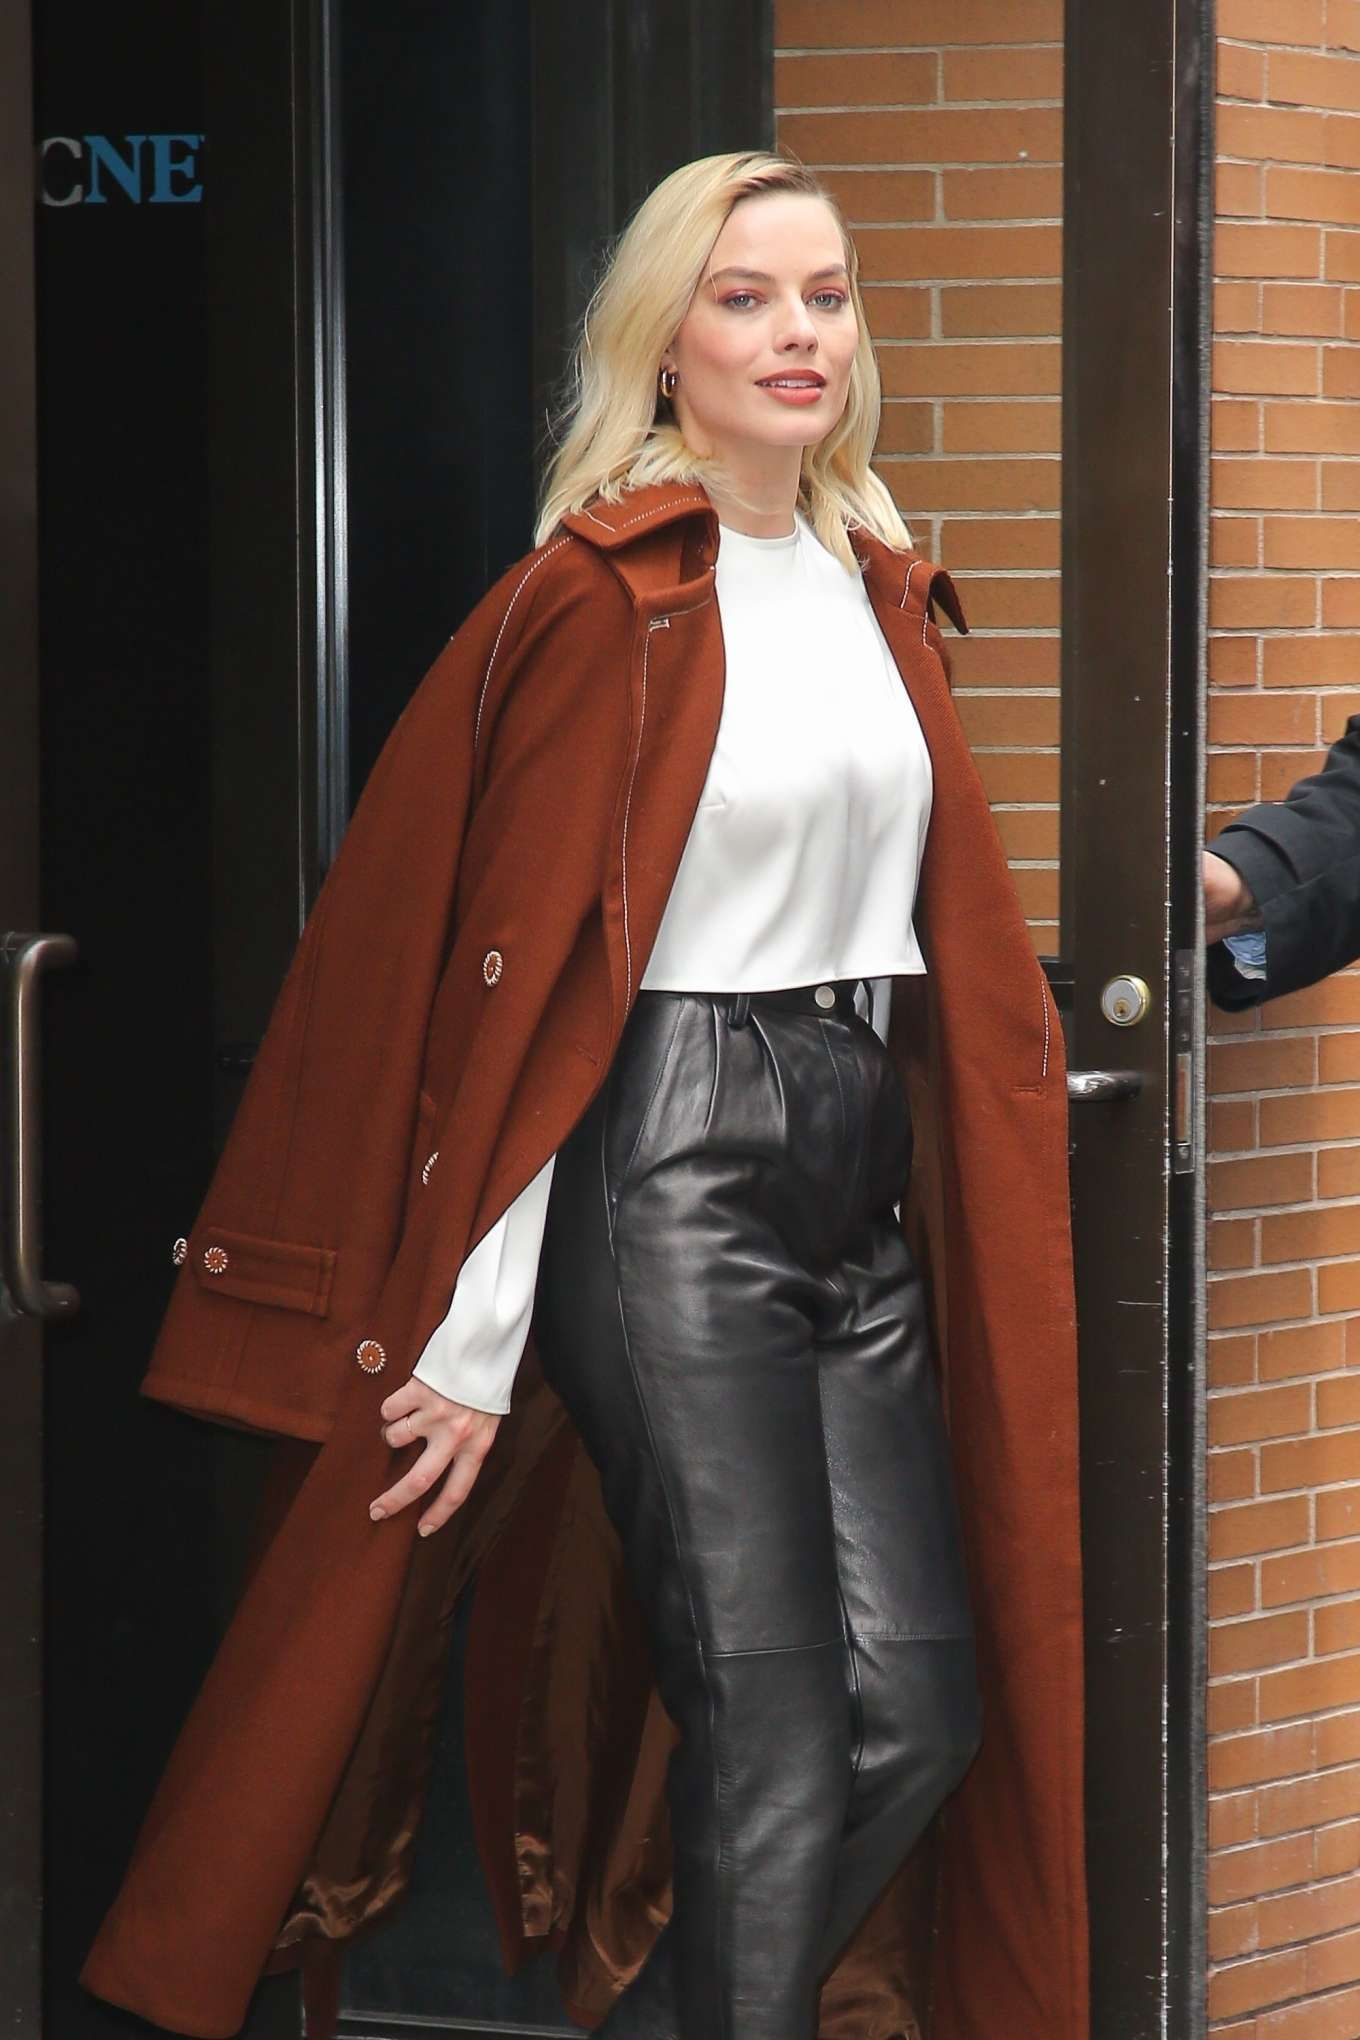 Women Leather Pants with Double Breasted Coat